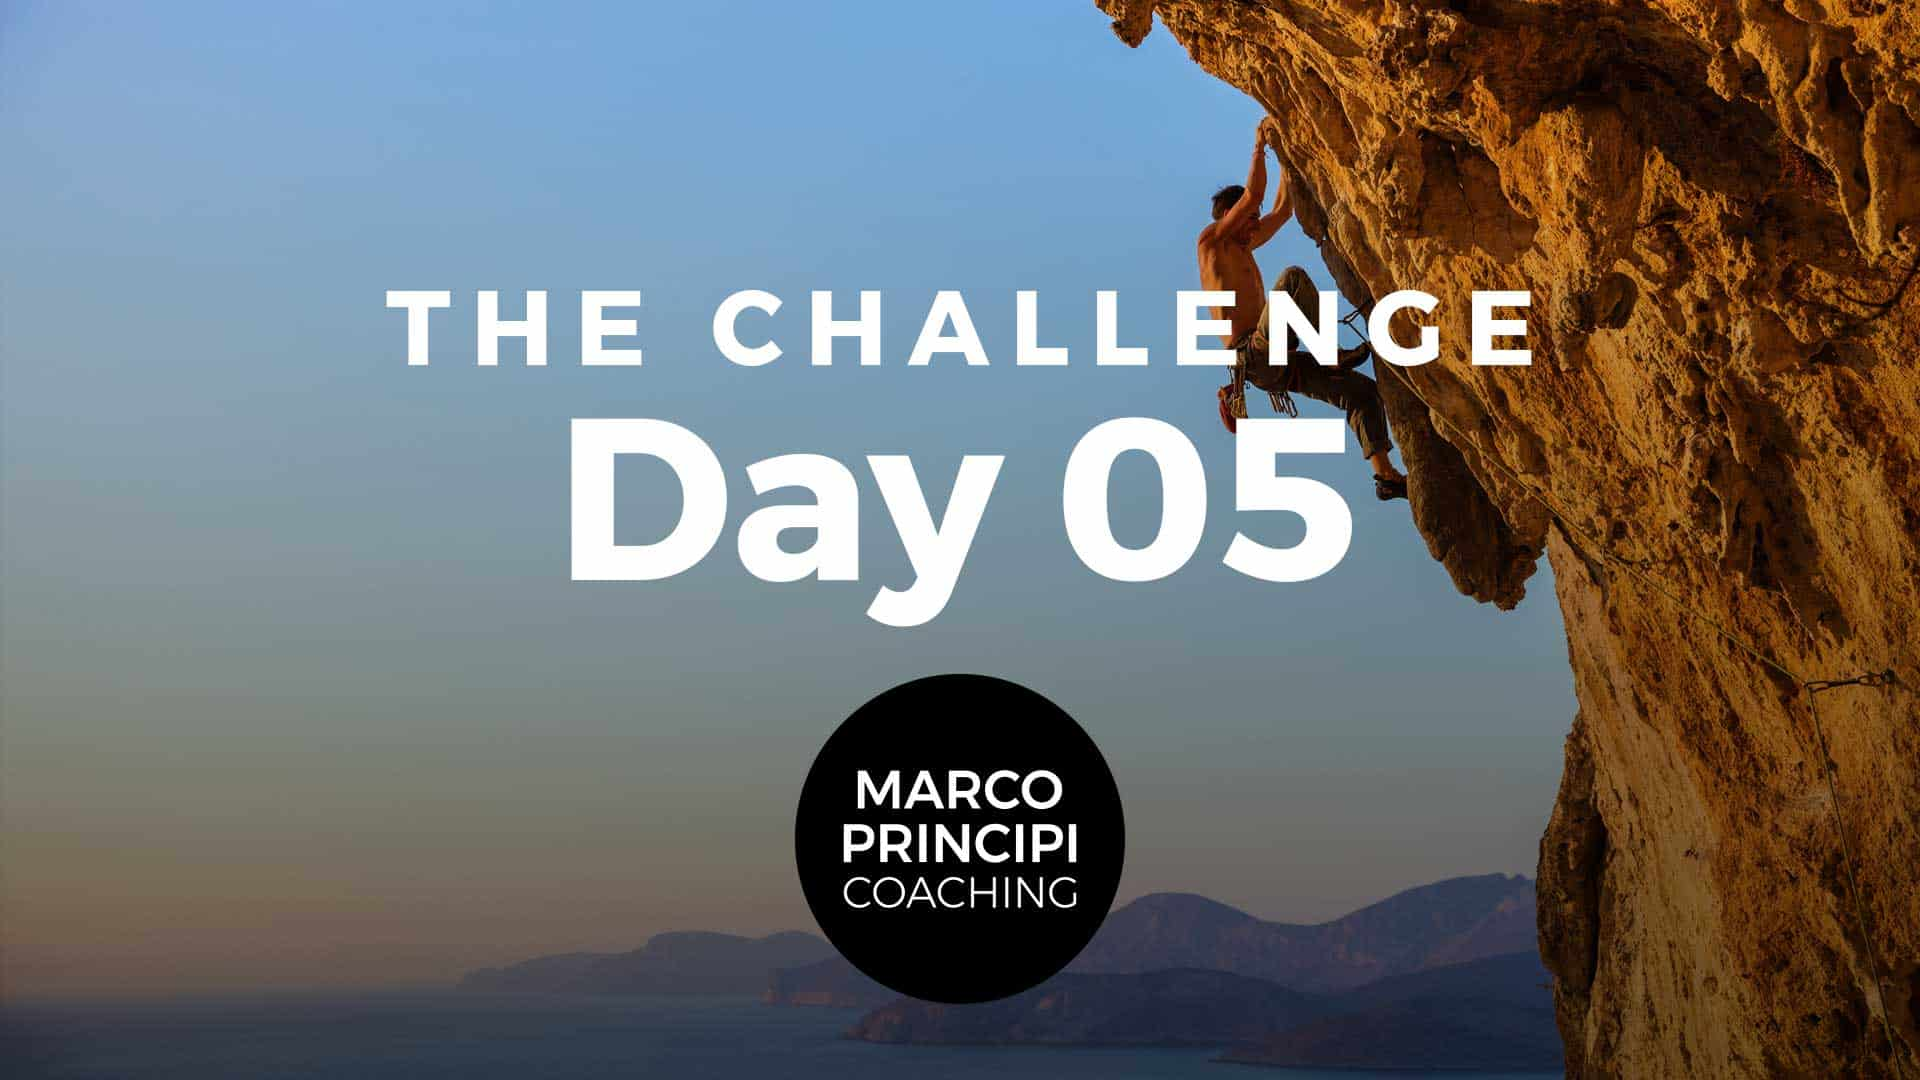 Marco Principi YT Cover The Challenge Day 005